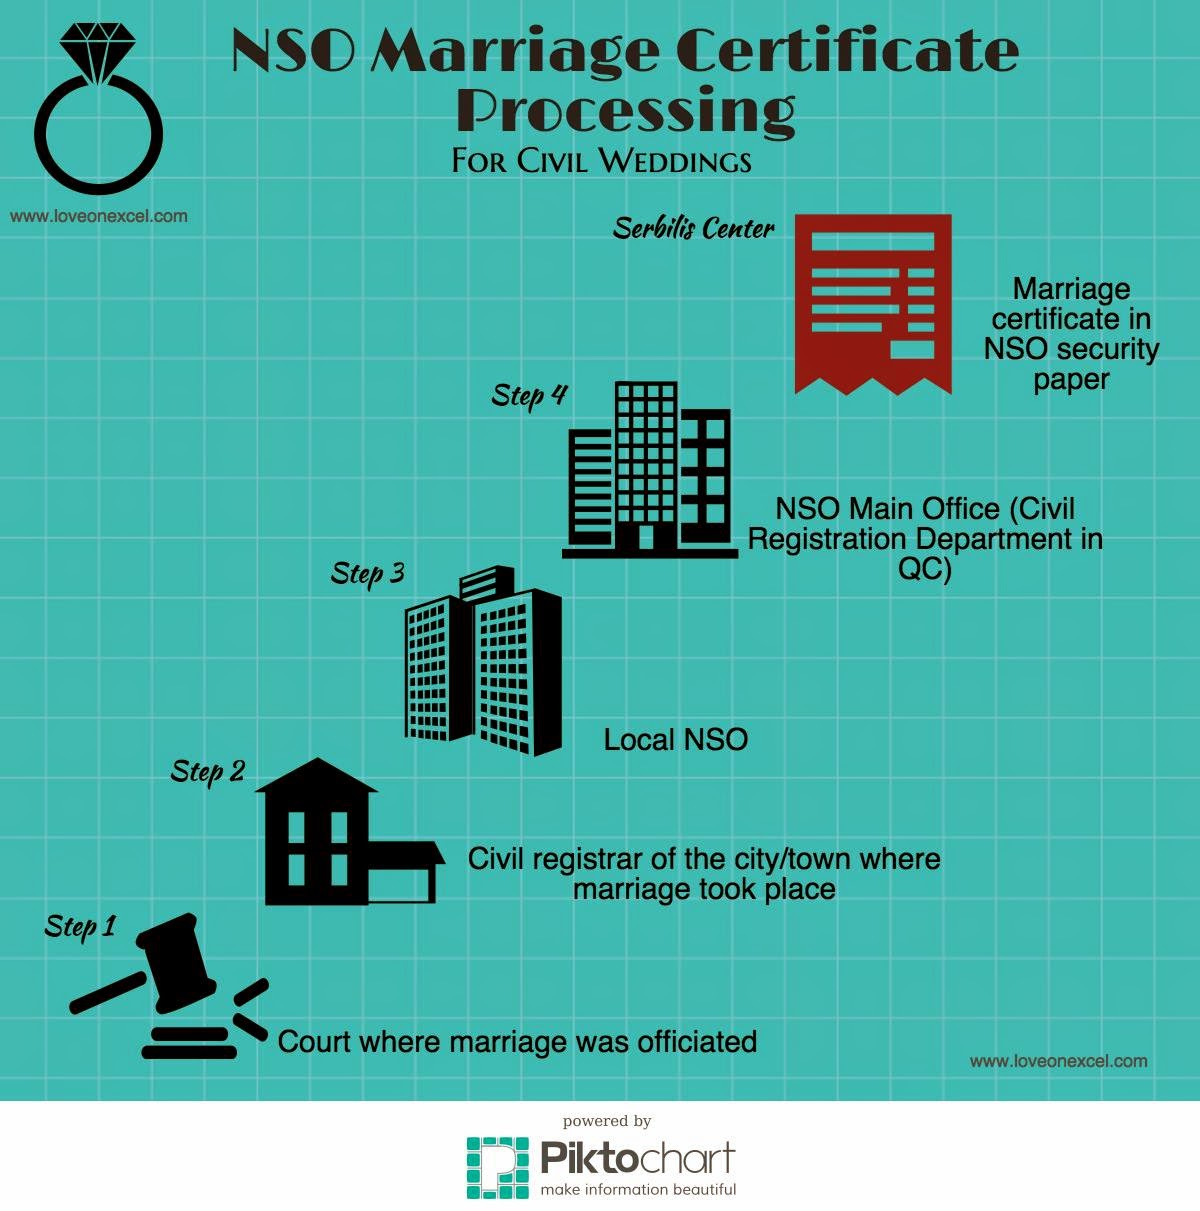 NSO Marriage Certificate | Speeding up NSO Marriage Certificate Processing